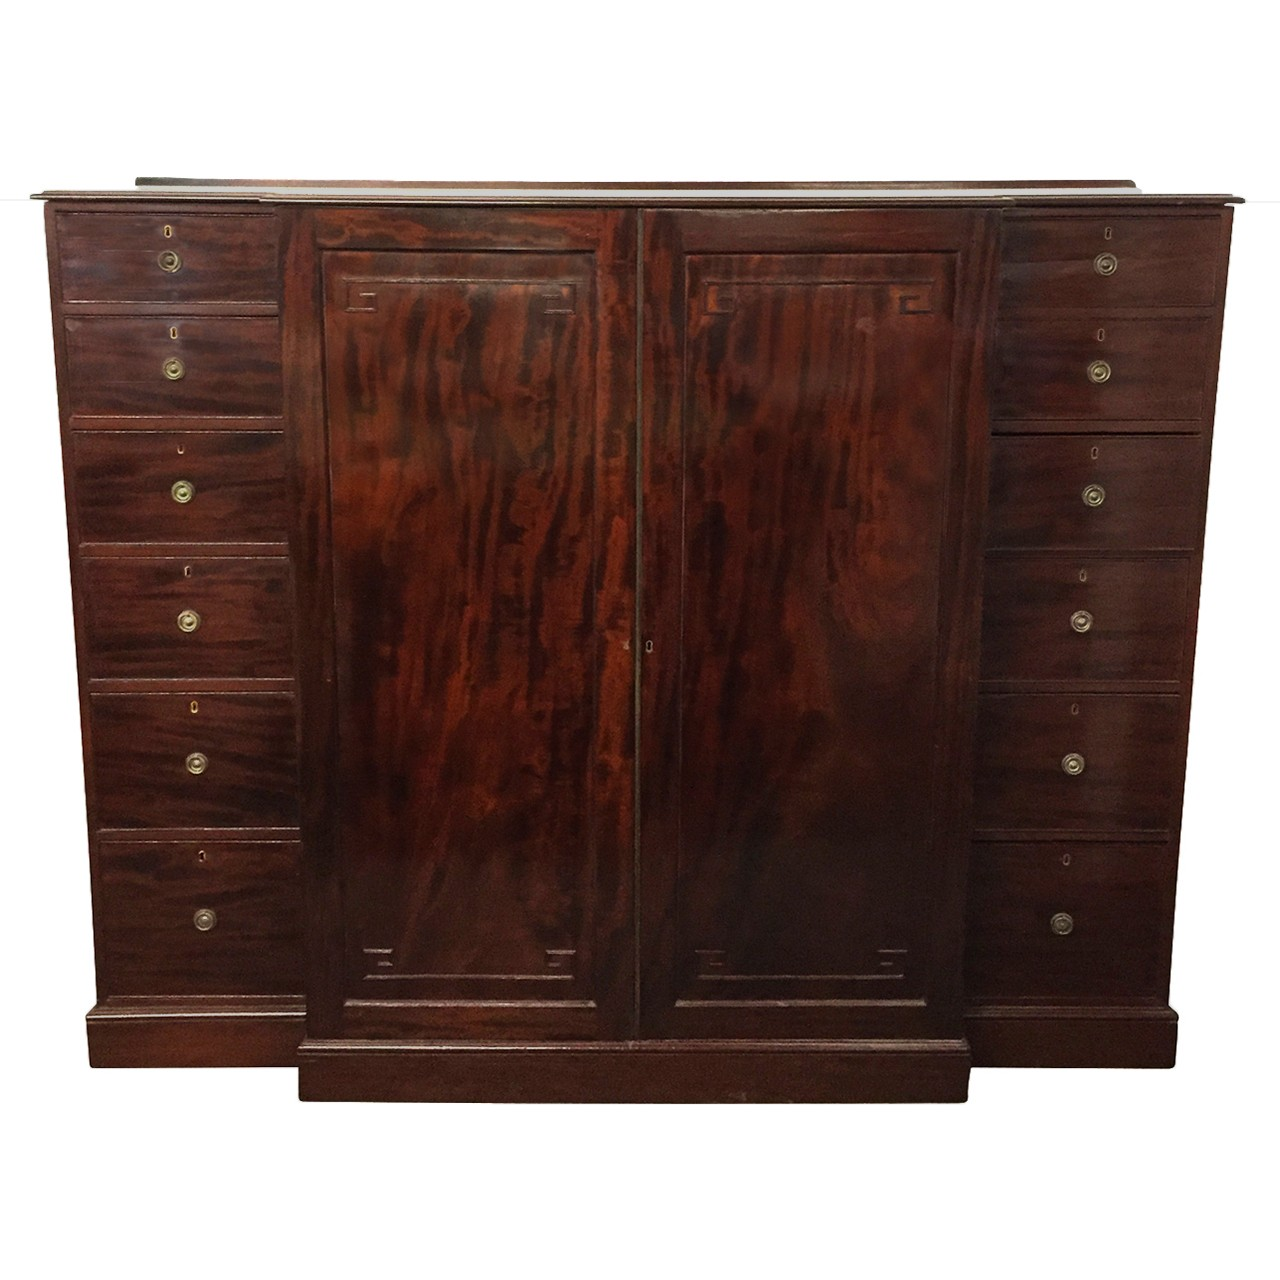 William IV English mahogany breakfront wardrobe. Ca 1840.